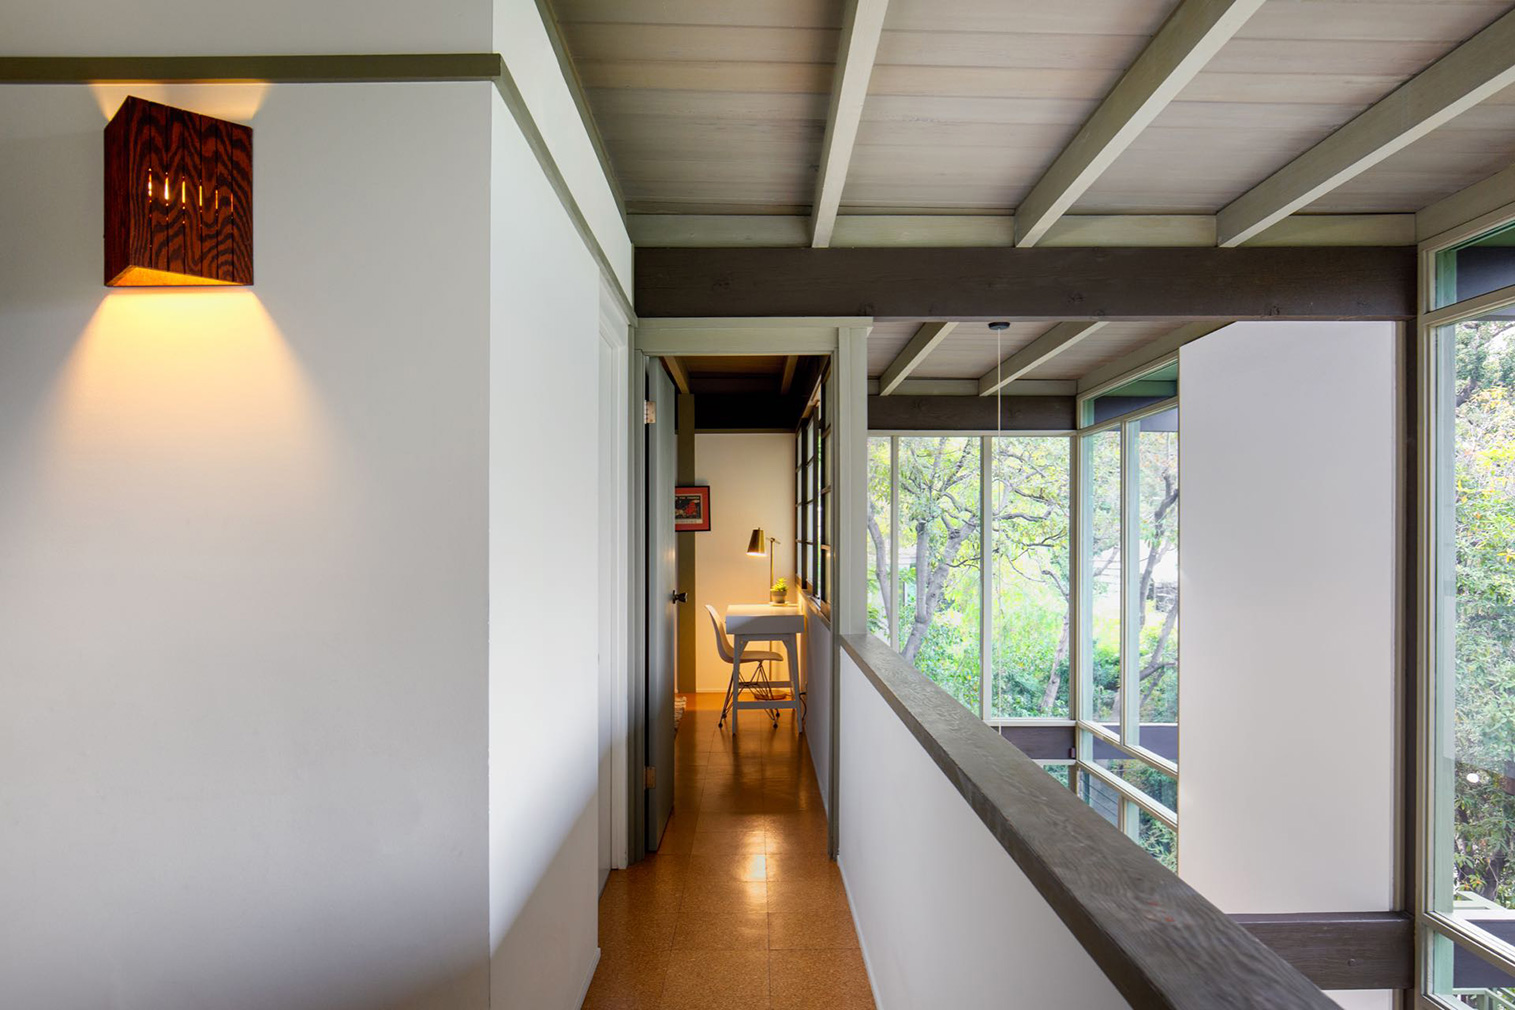 Pasadena post-and-beam by Case Study architects Buff, Straub & Hensman is for sale